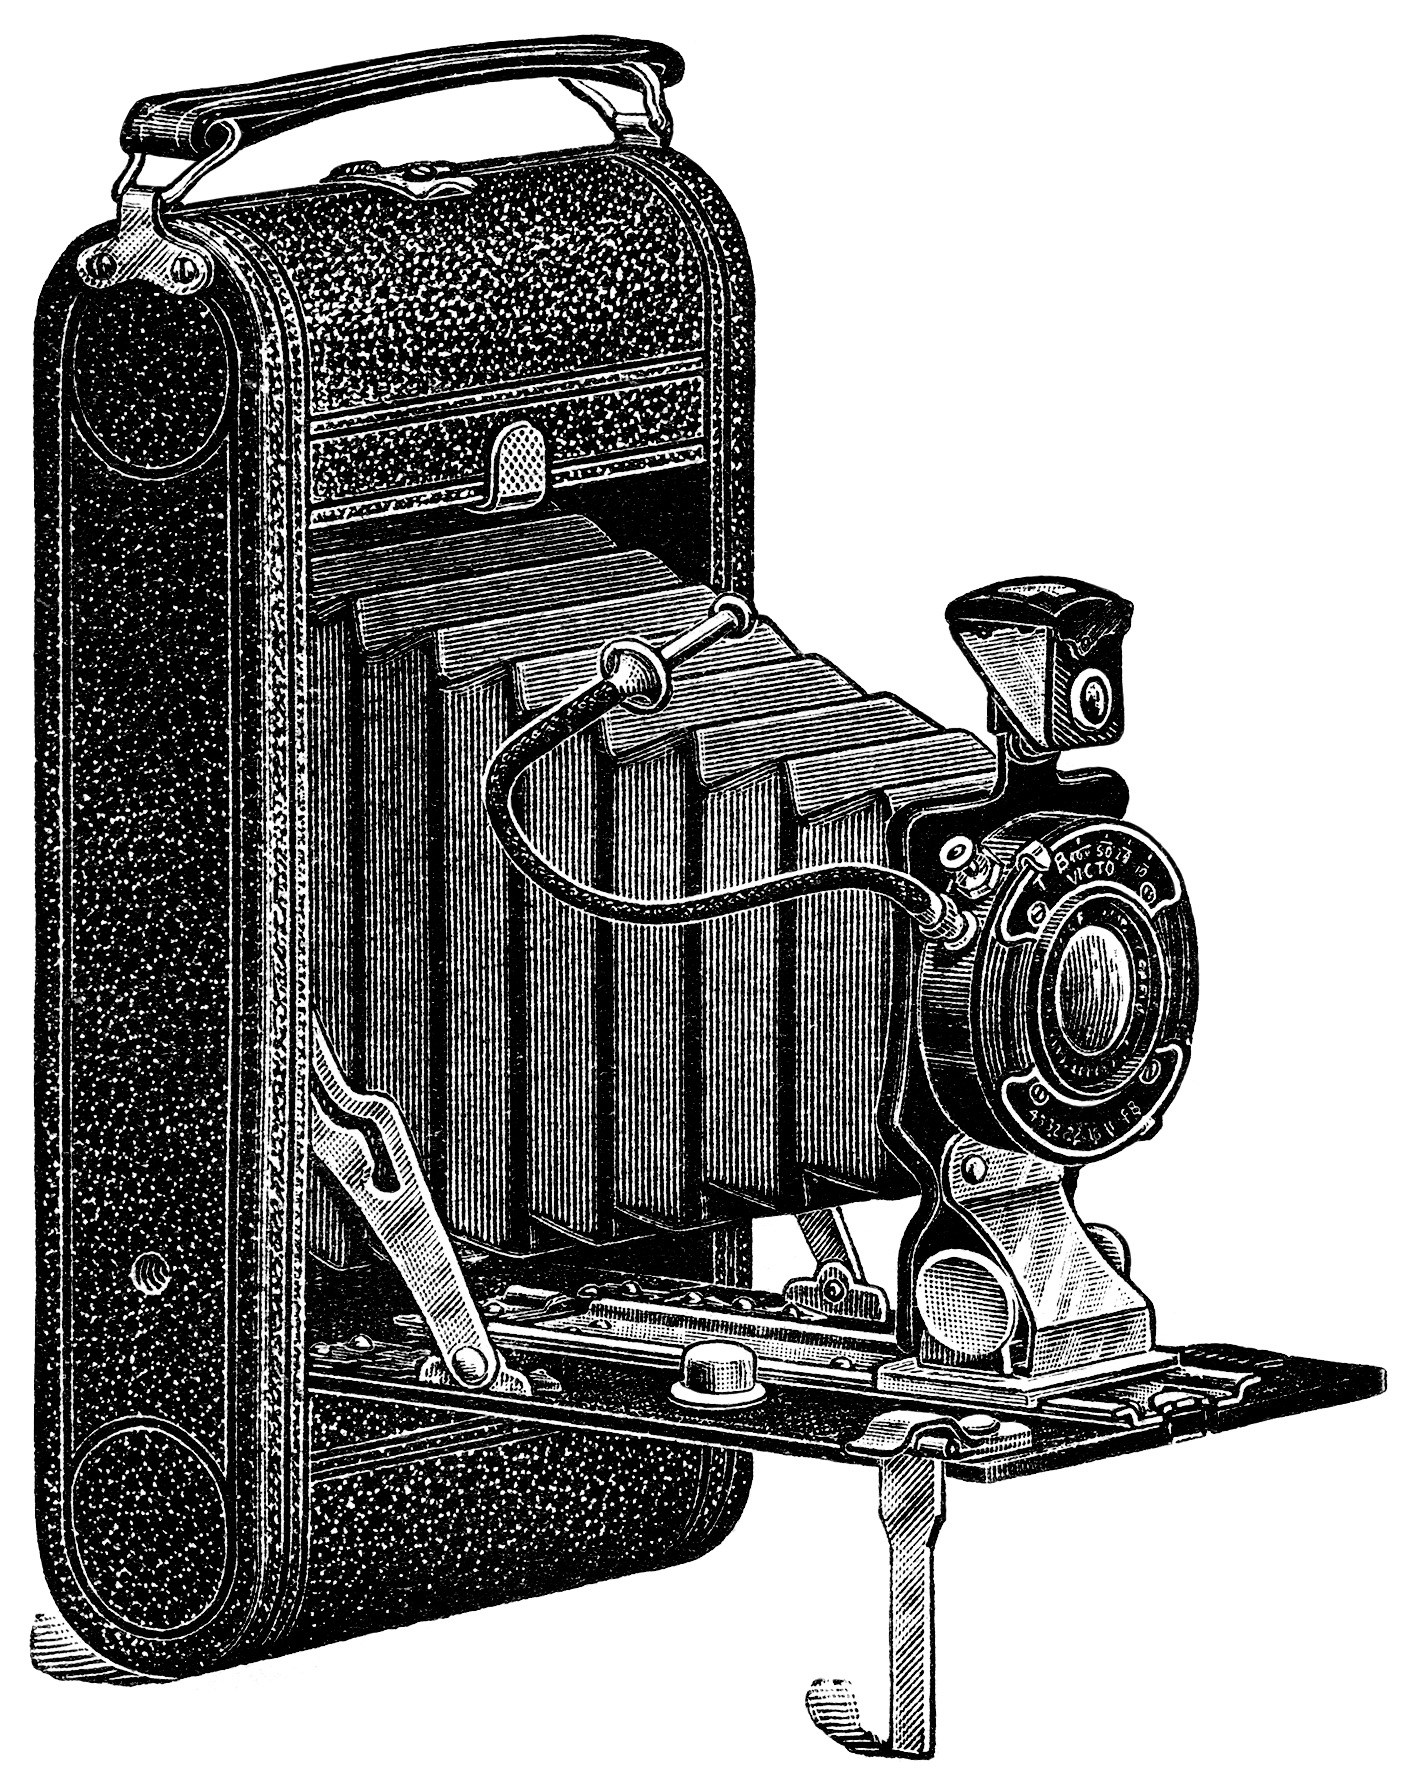 Free Vintage Camera Clipart Image.